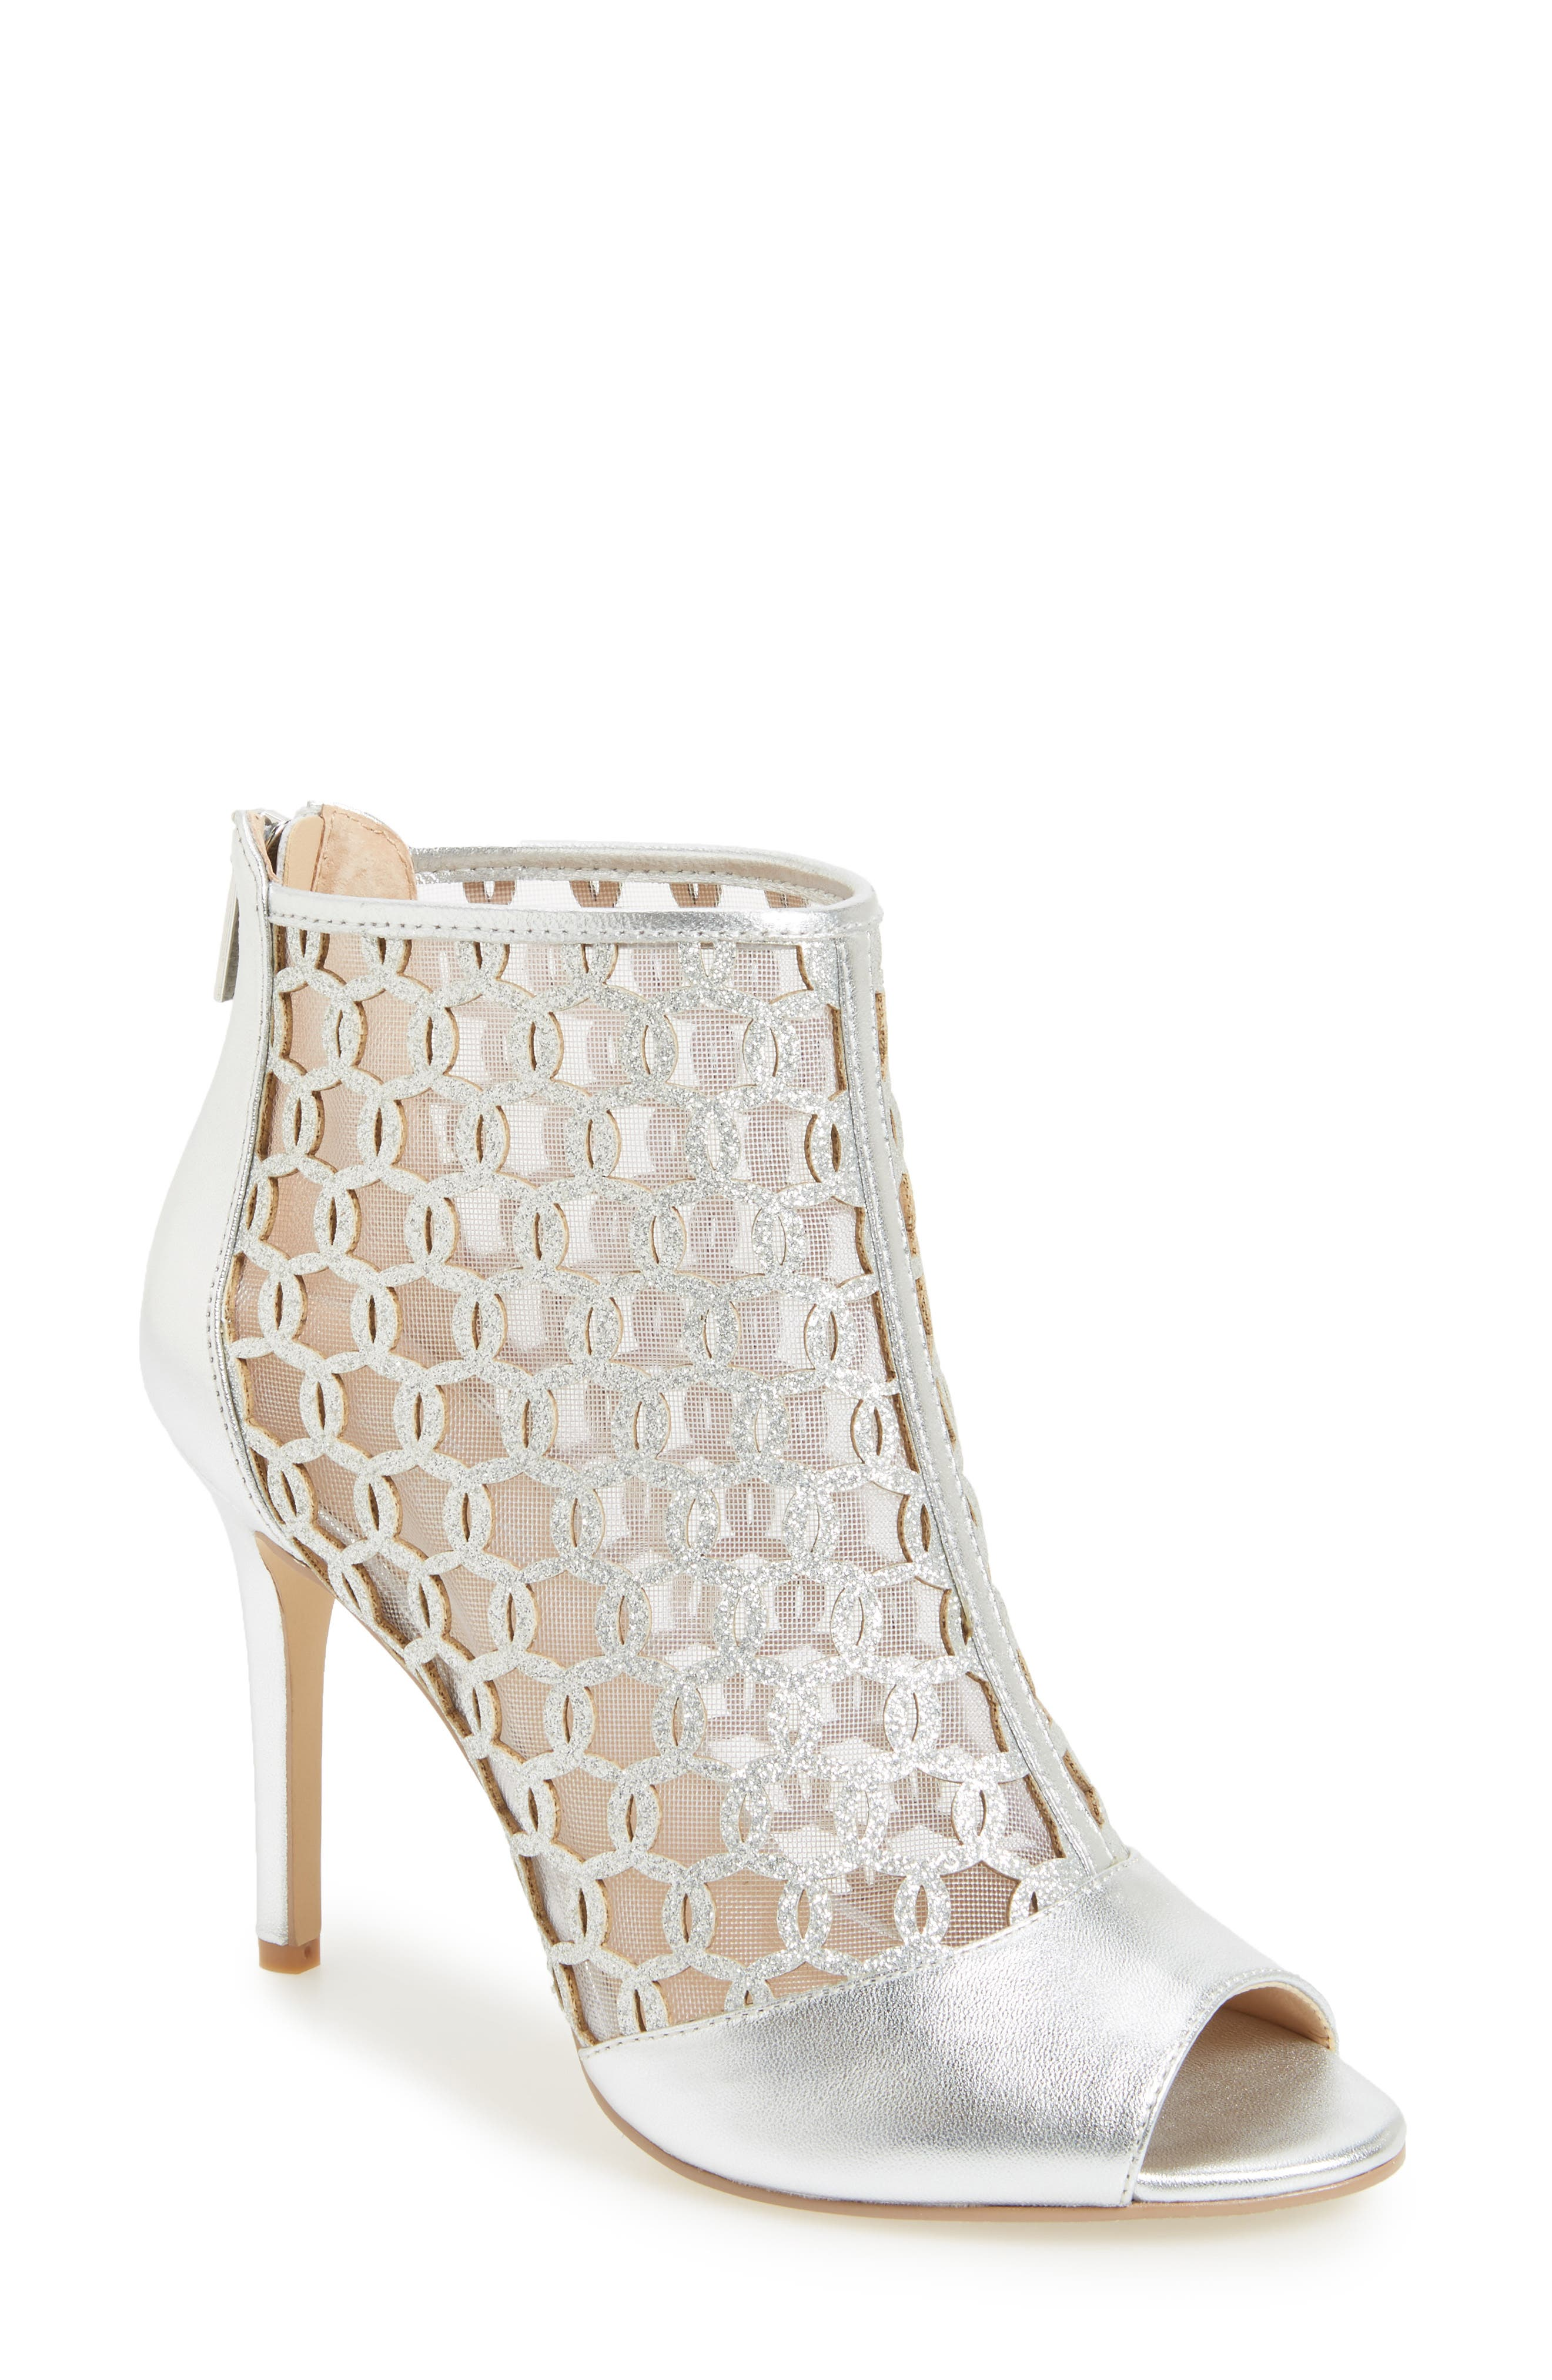 Alternate Image 1 Selected - Jewel Badgley Mischka Holt II Glittery Cage Sandal (Women)